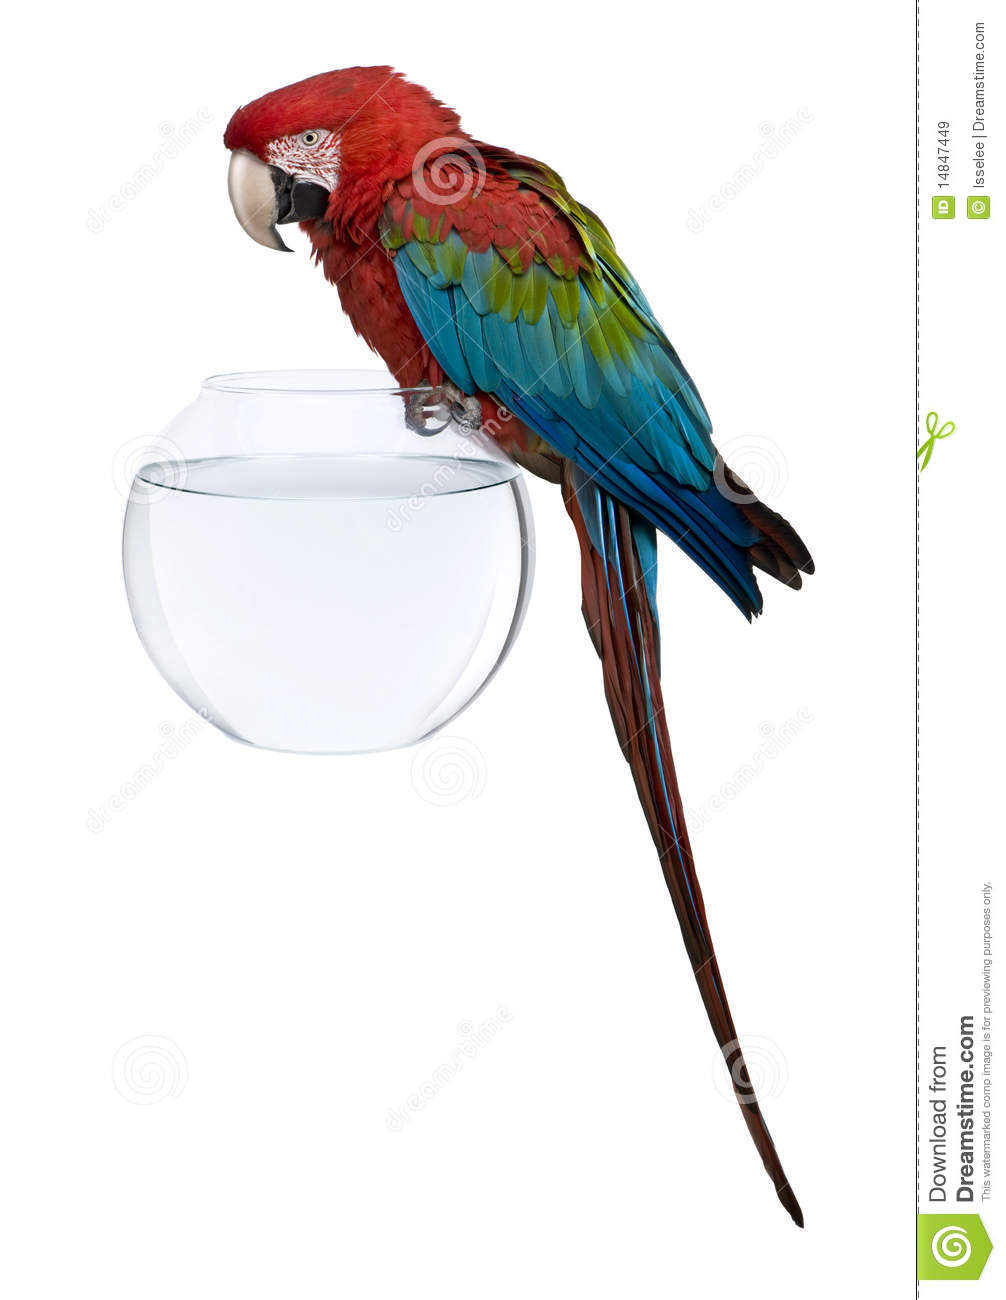 Red-and-green Macaw clipart #17, Download drawings